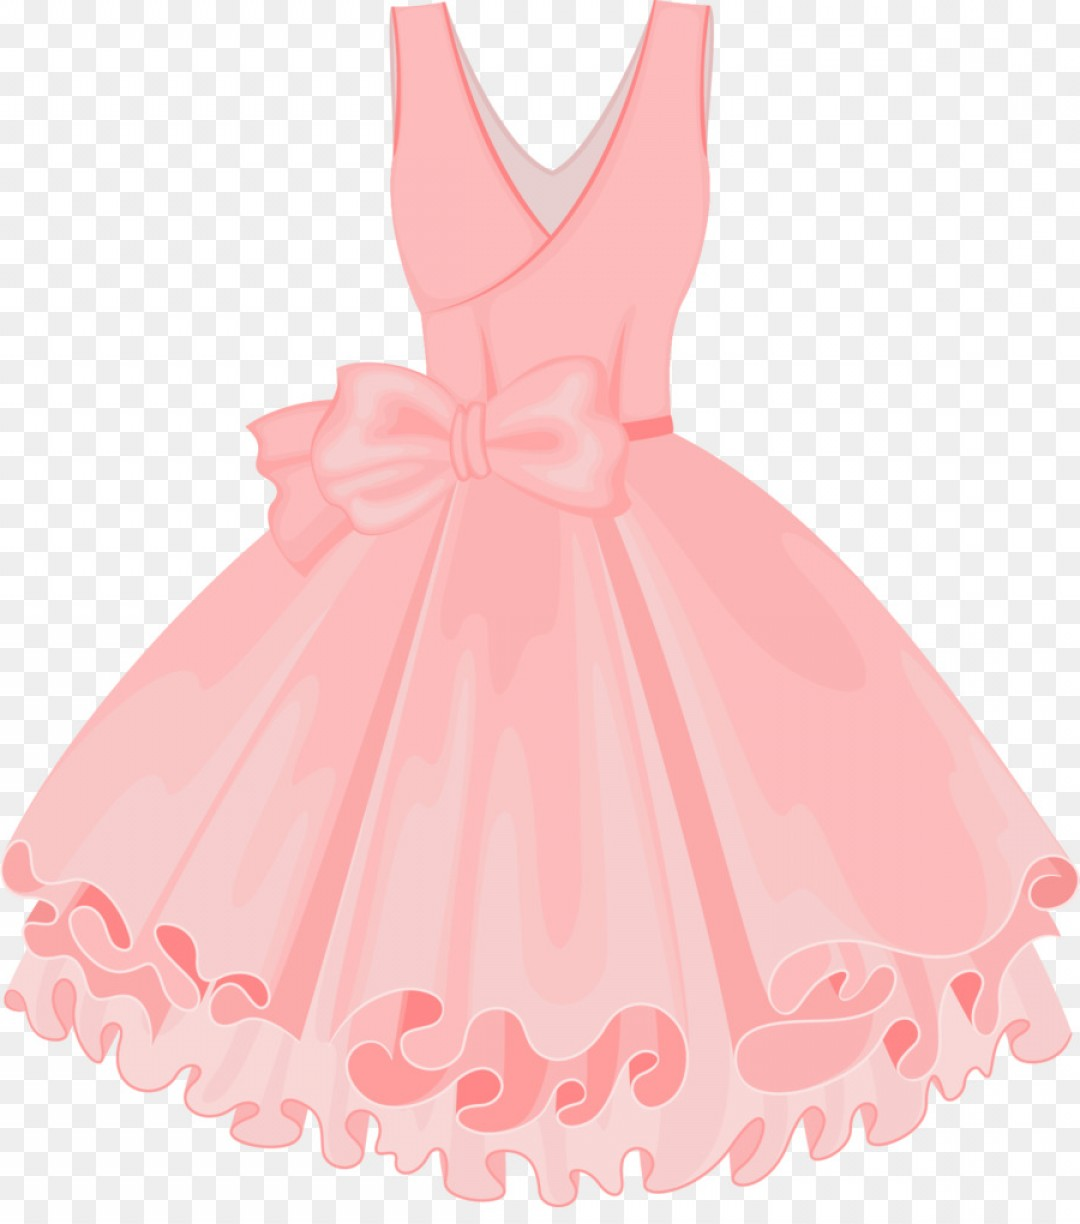 Png Skirt Tutu Dress Vector Painted Pink Tutu.